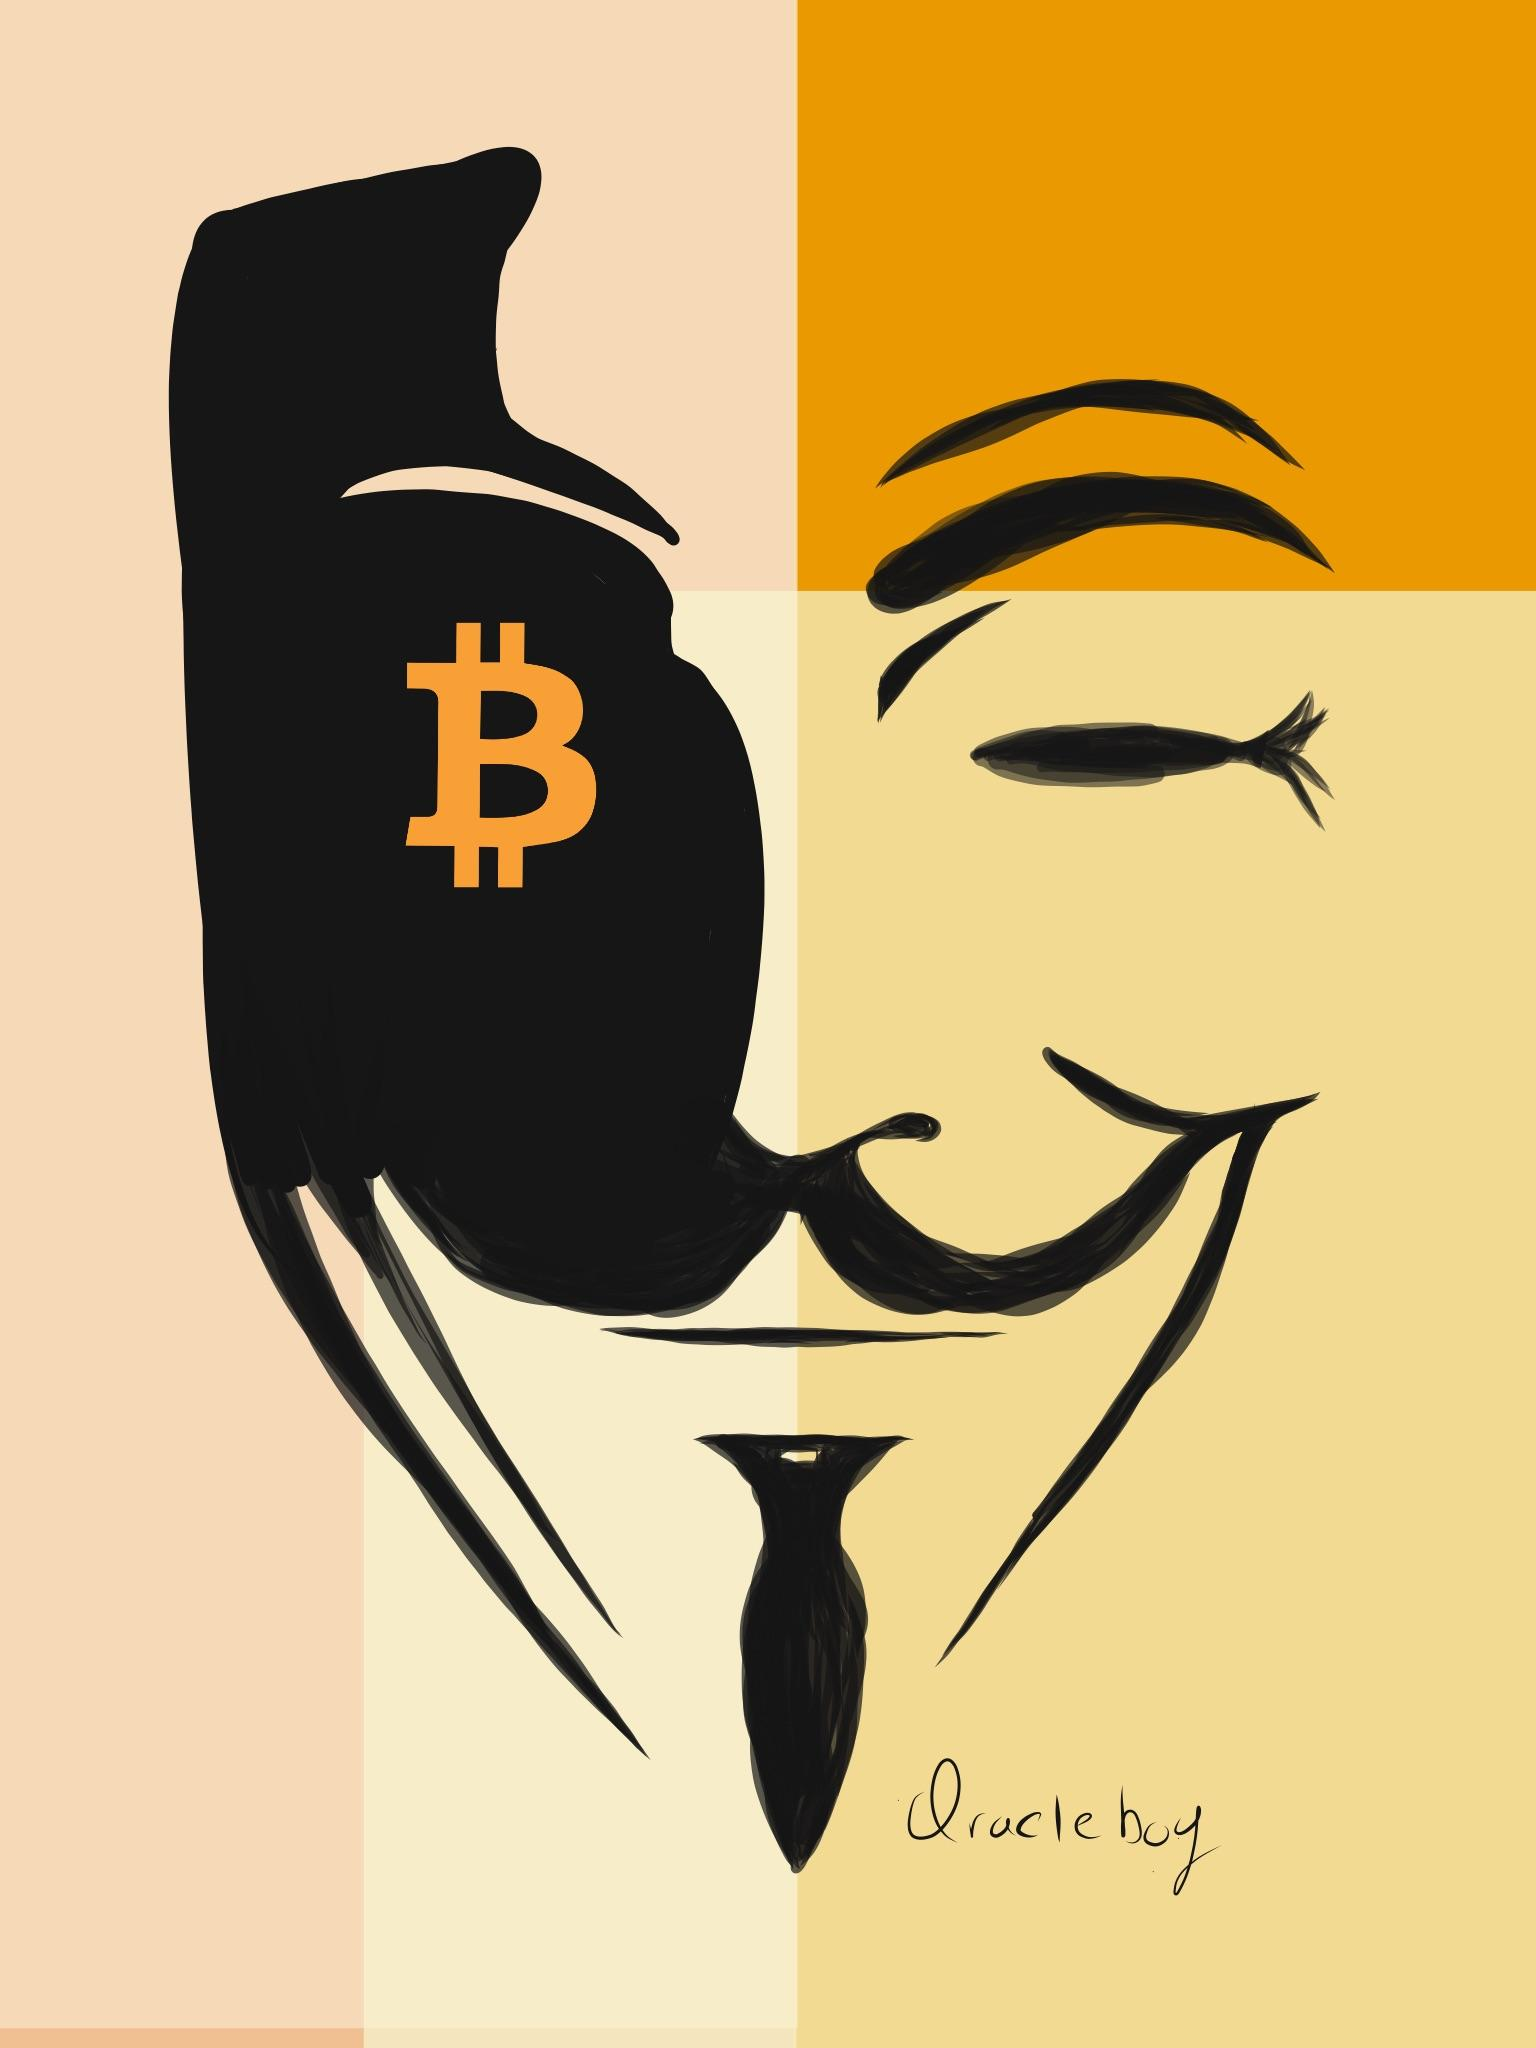 Bitcoin equals privacy by design